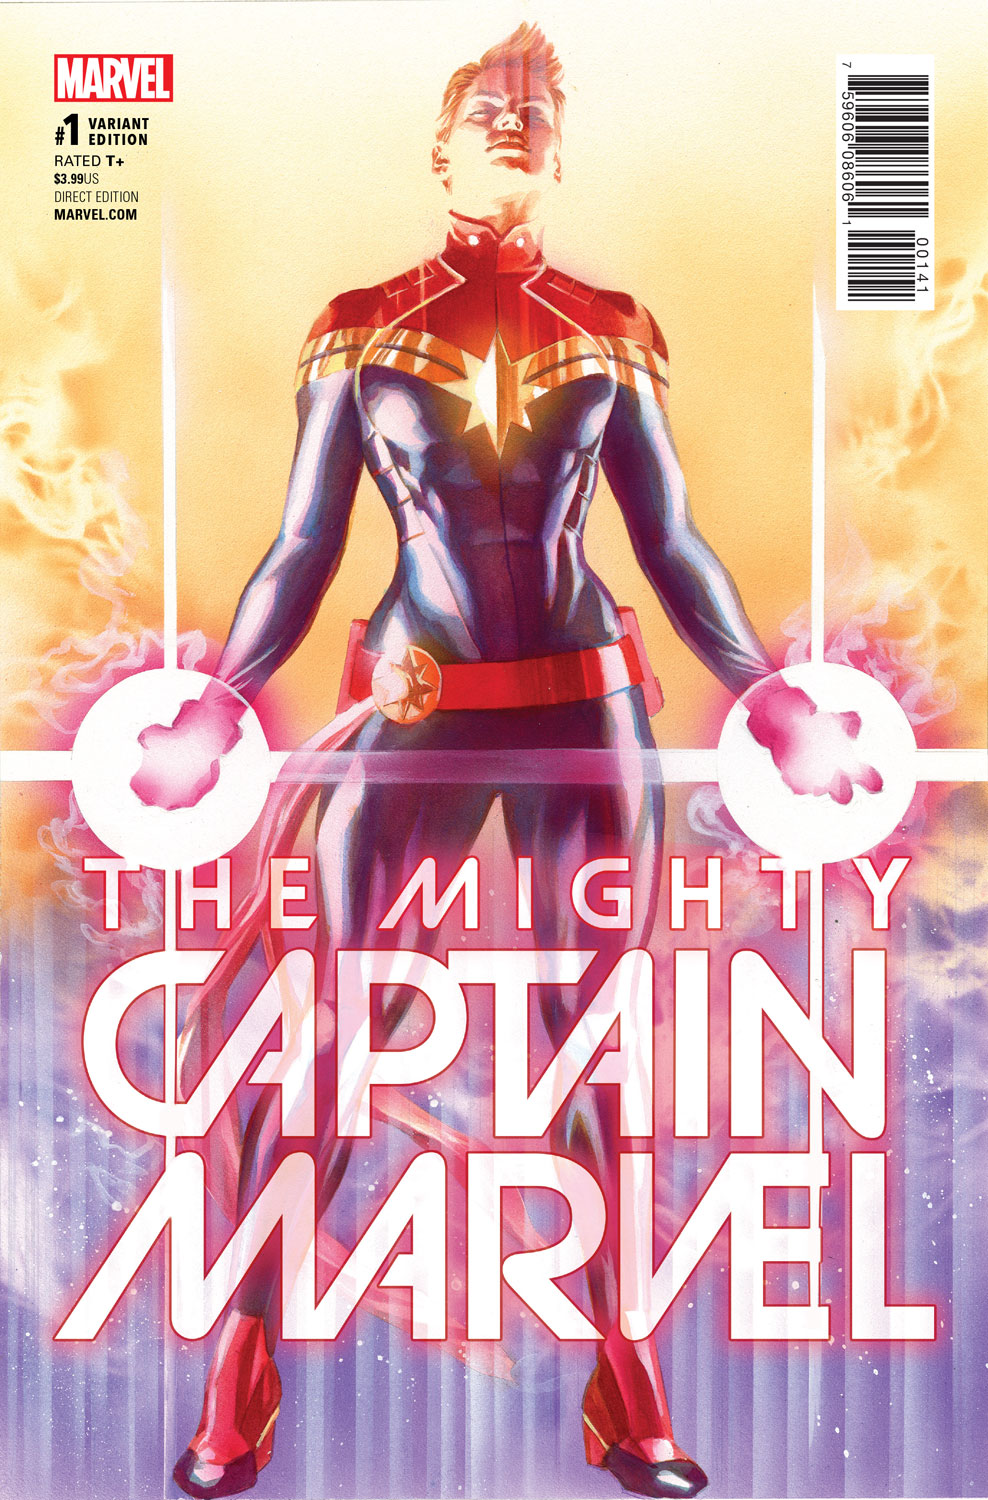 The Mighty Captain Marvel #1 Review